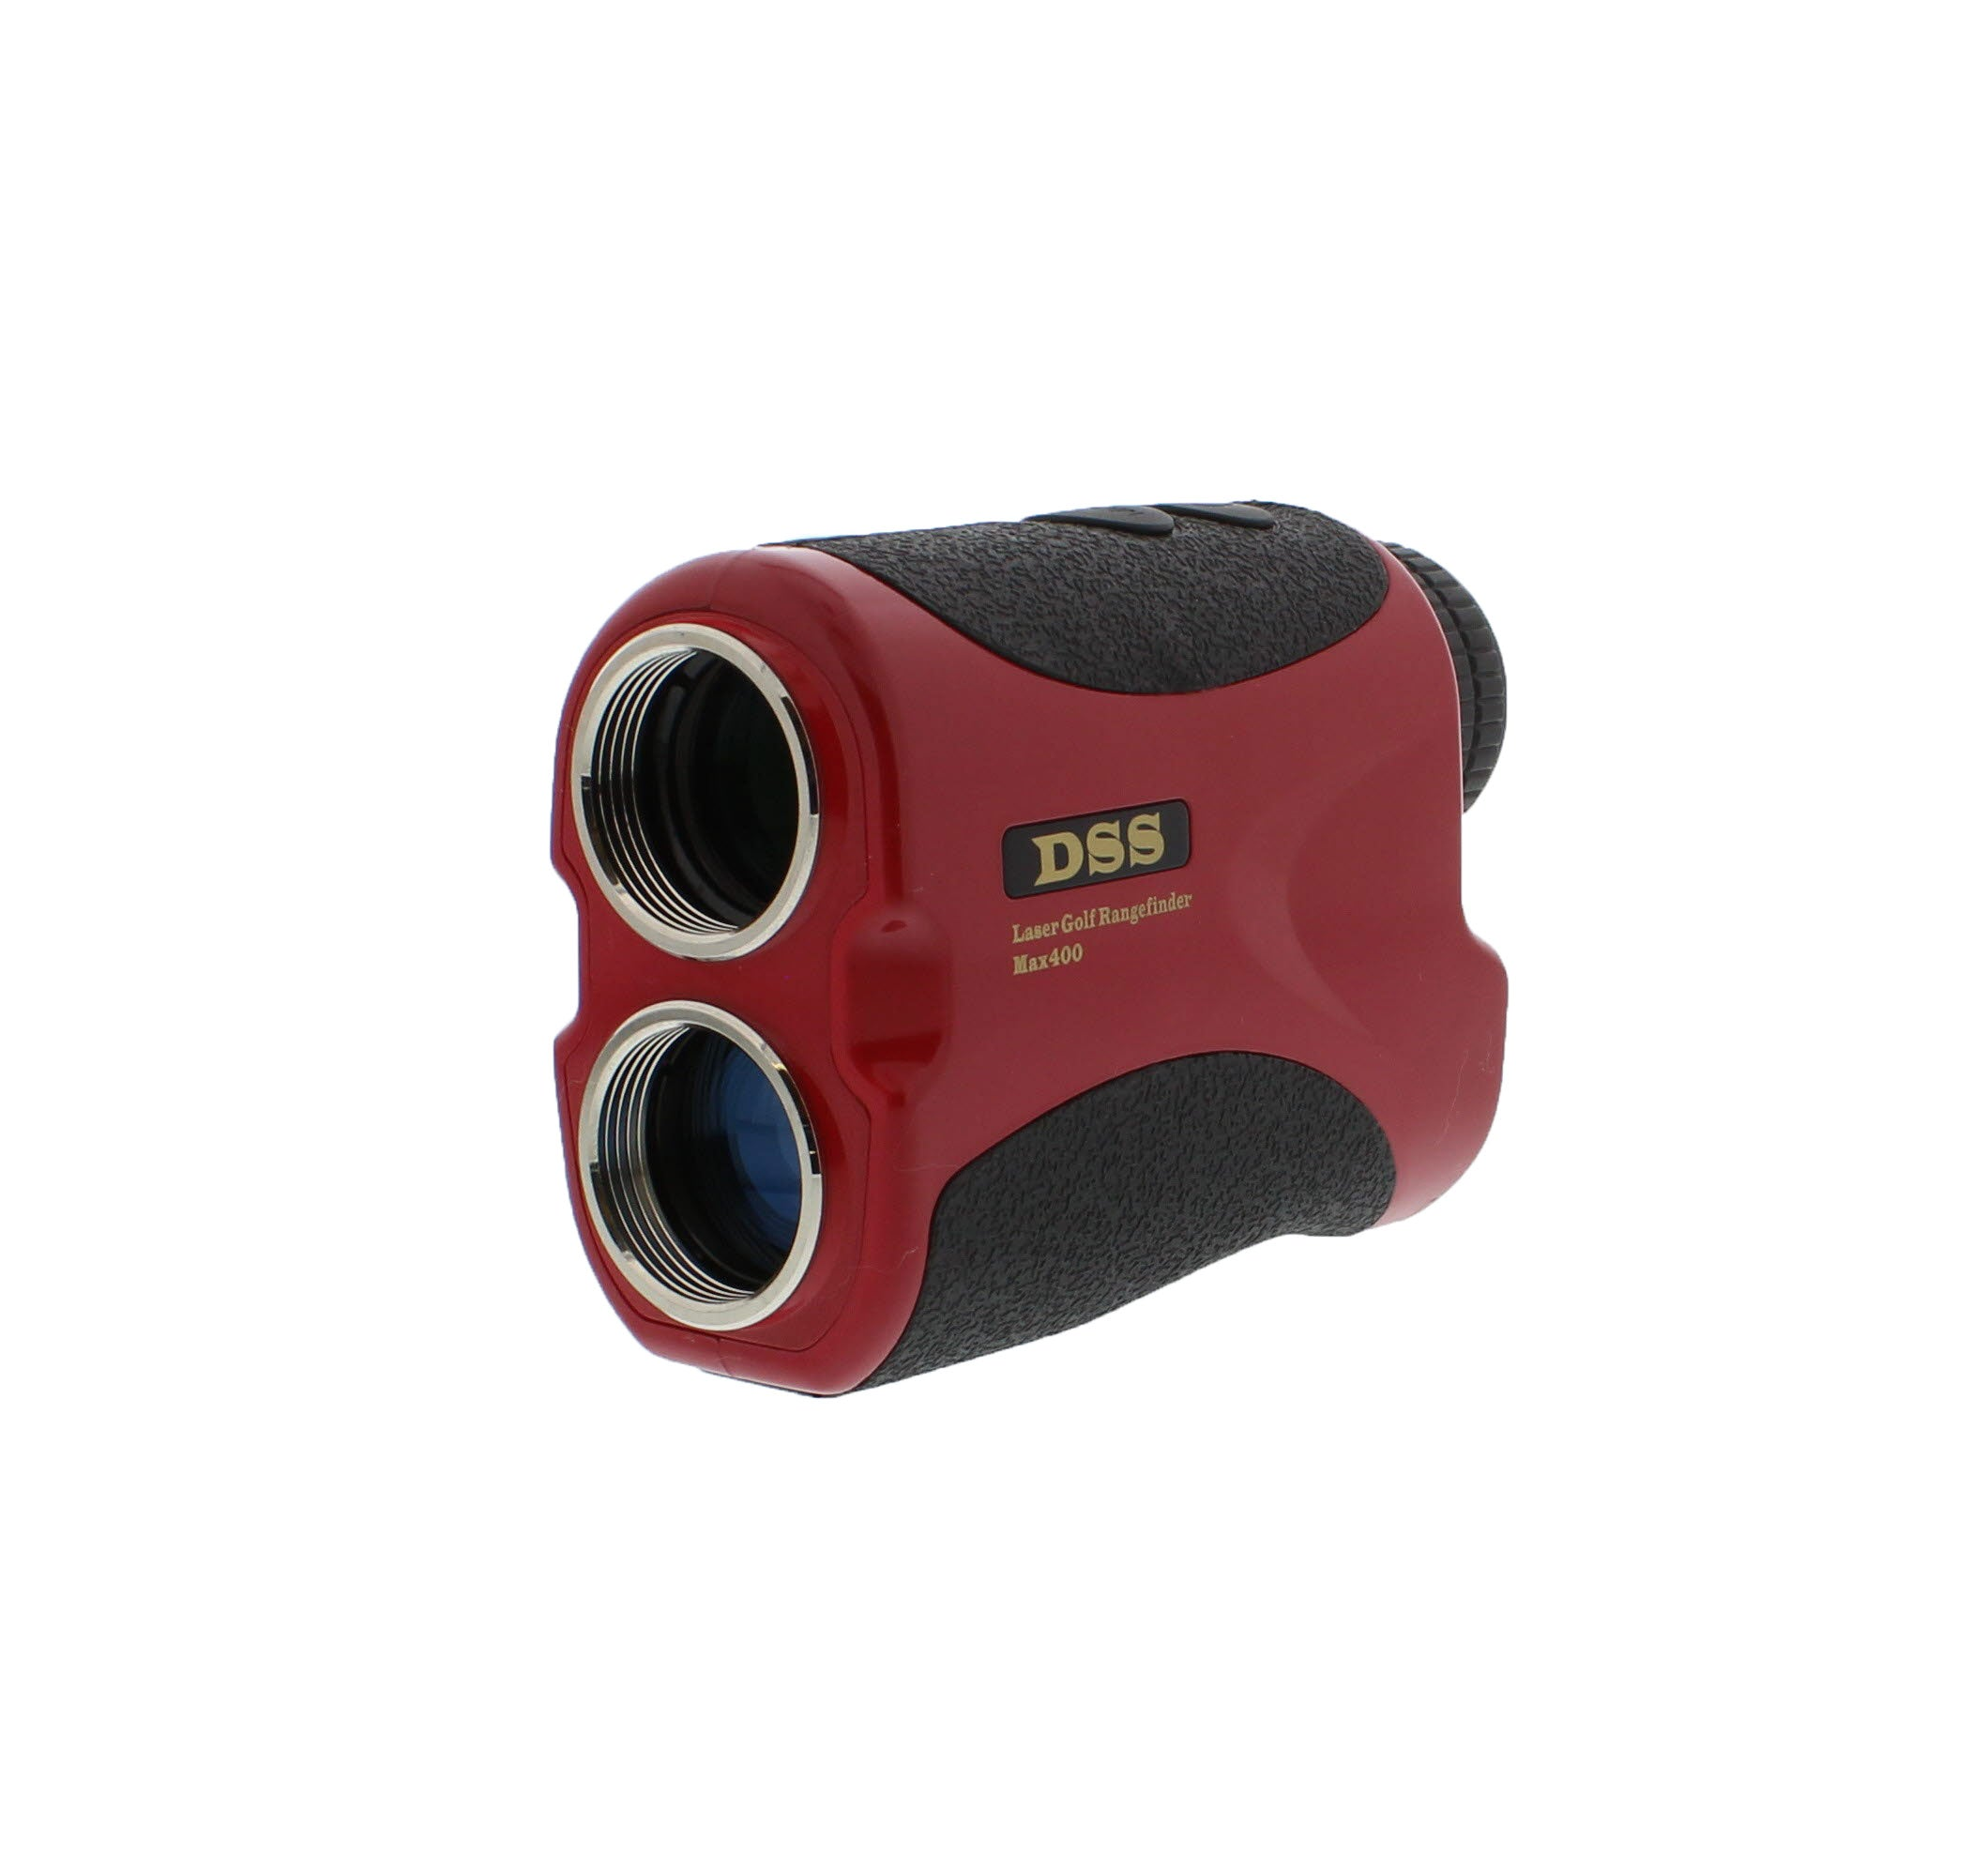 Golf and Hunting Laser Rangefinder, 450 Yards, Red